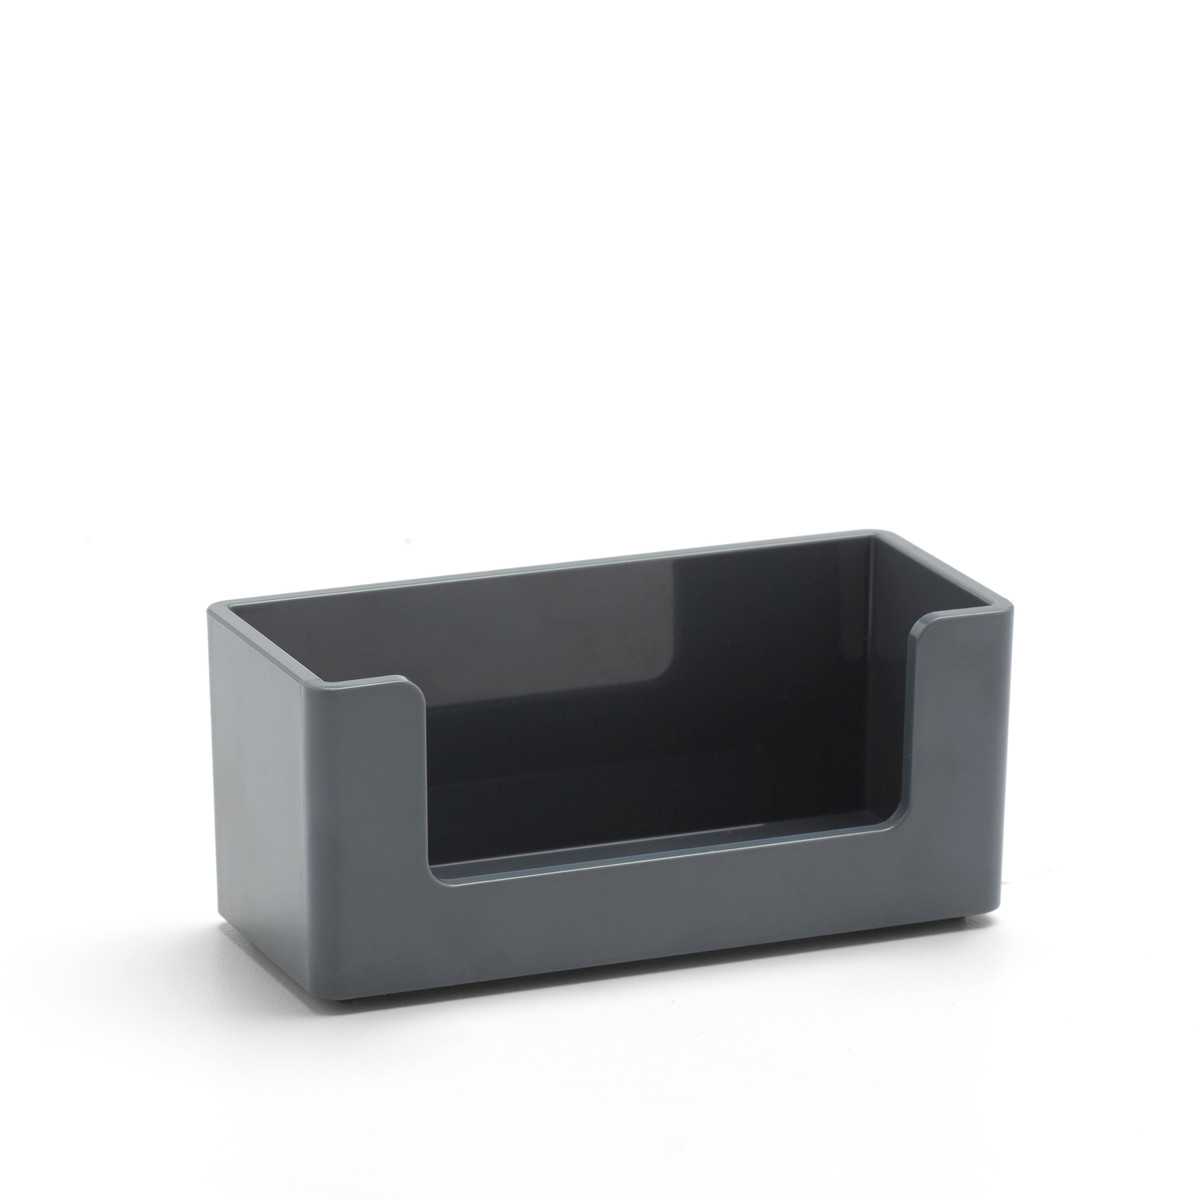 Dark gray business card holder desk accessories poppin dark gray business card holderdark grayhi res colourmoves